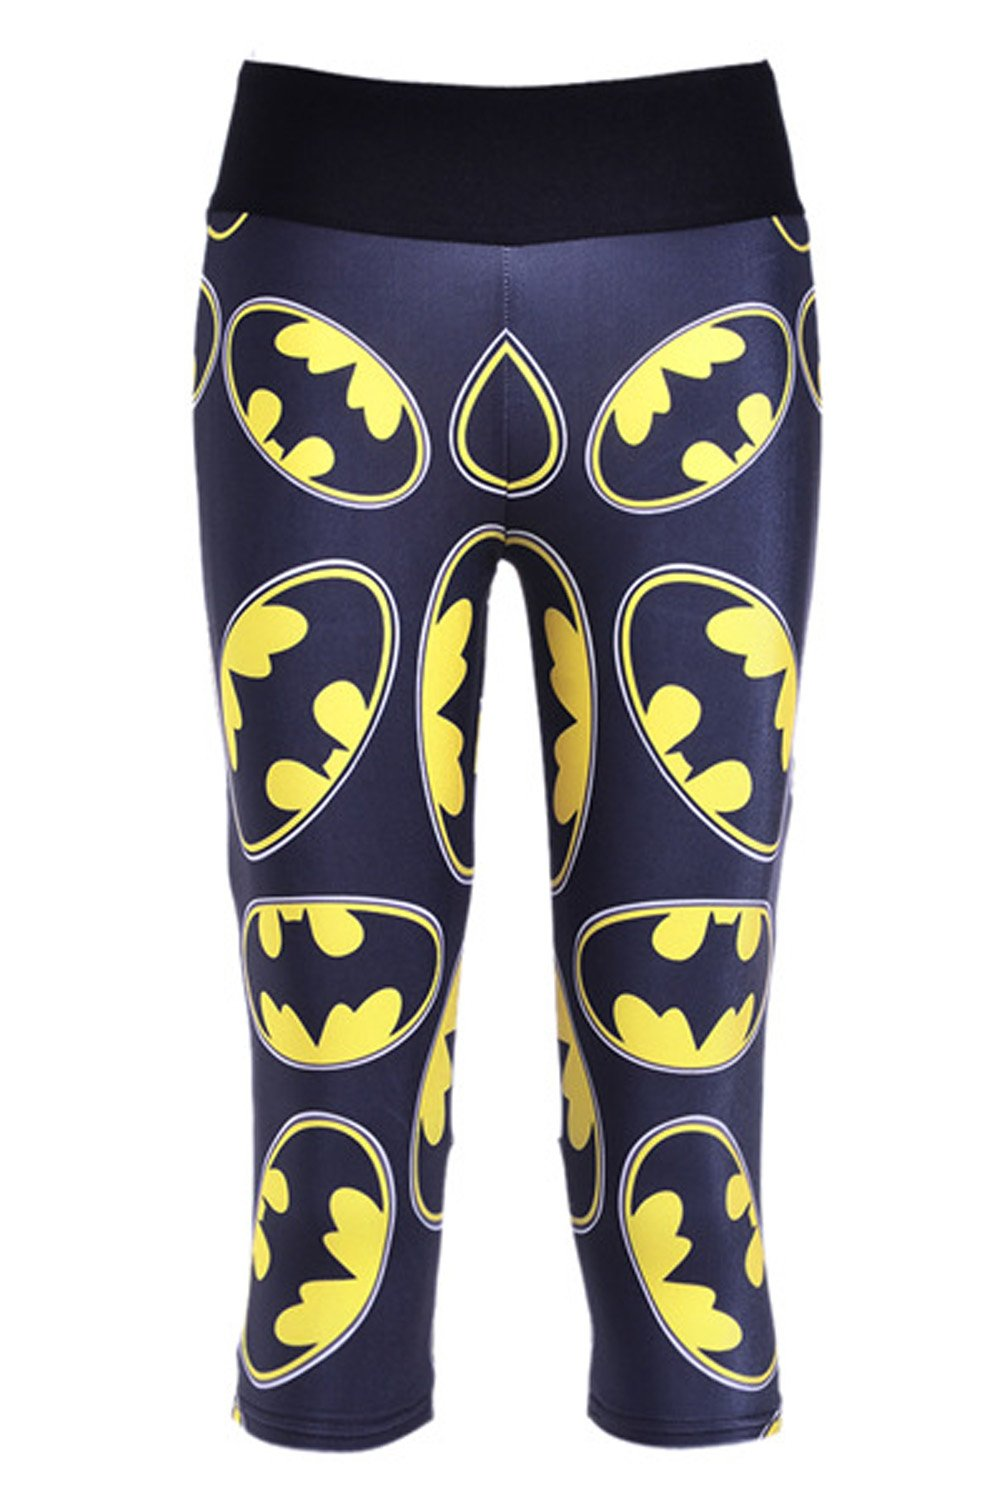 Lady Queen Women's Batman Logo Knee Length Tight Sports Capri Pants